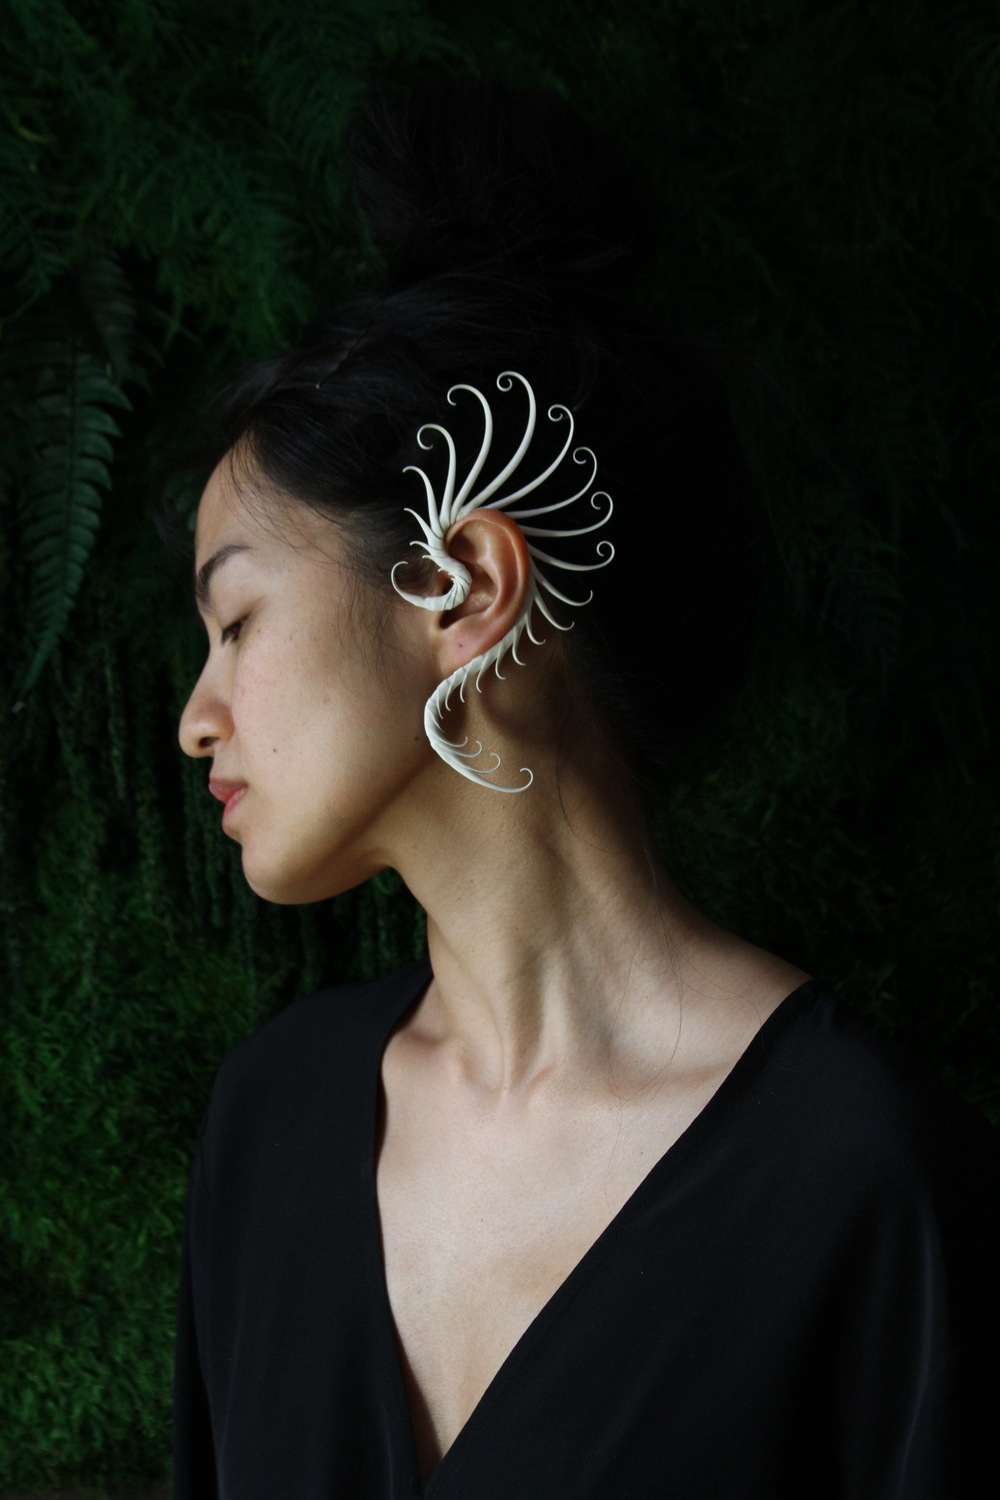 Accessories:  Zoa Chimerum Jewelry  Modeling/Styling/Set:  Seda Sean  MUA: Siri Crane  Photography:  Sue-Yee Leung